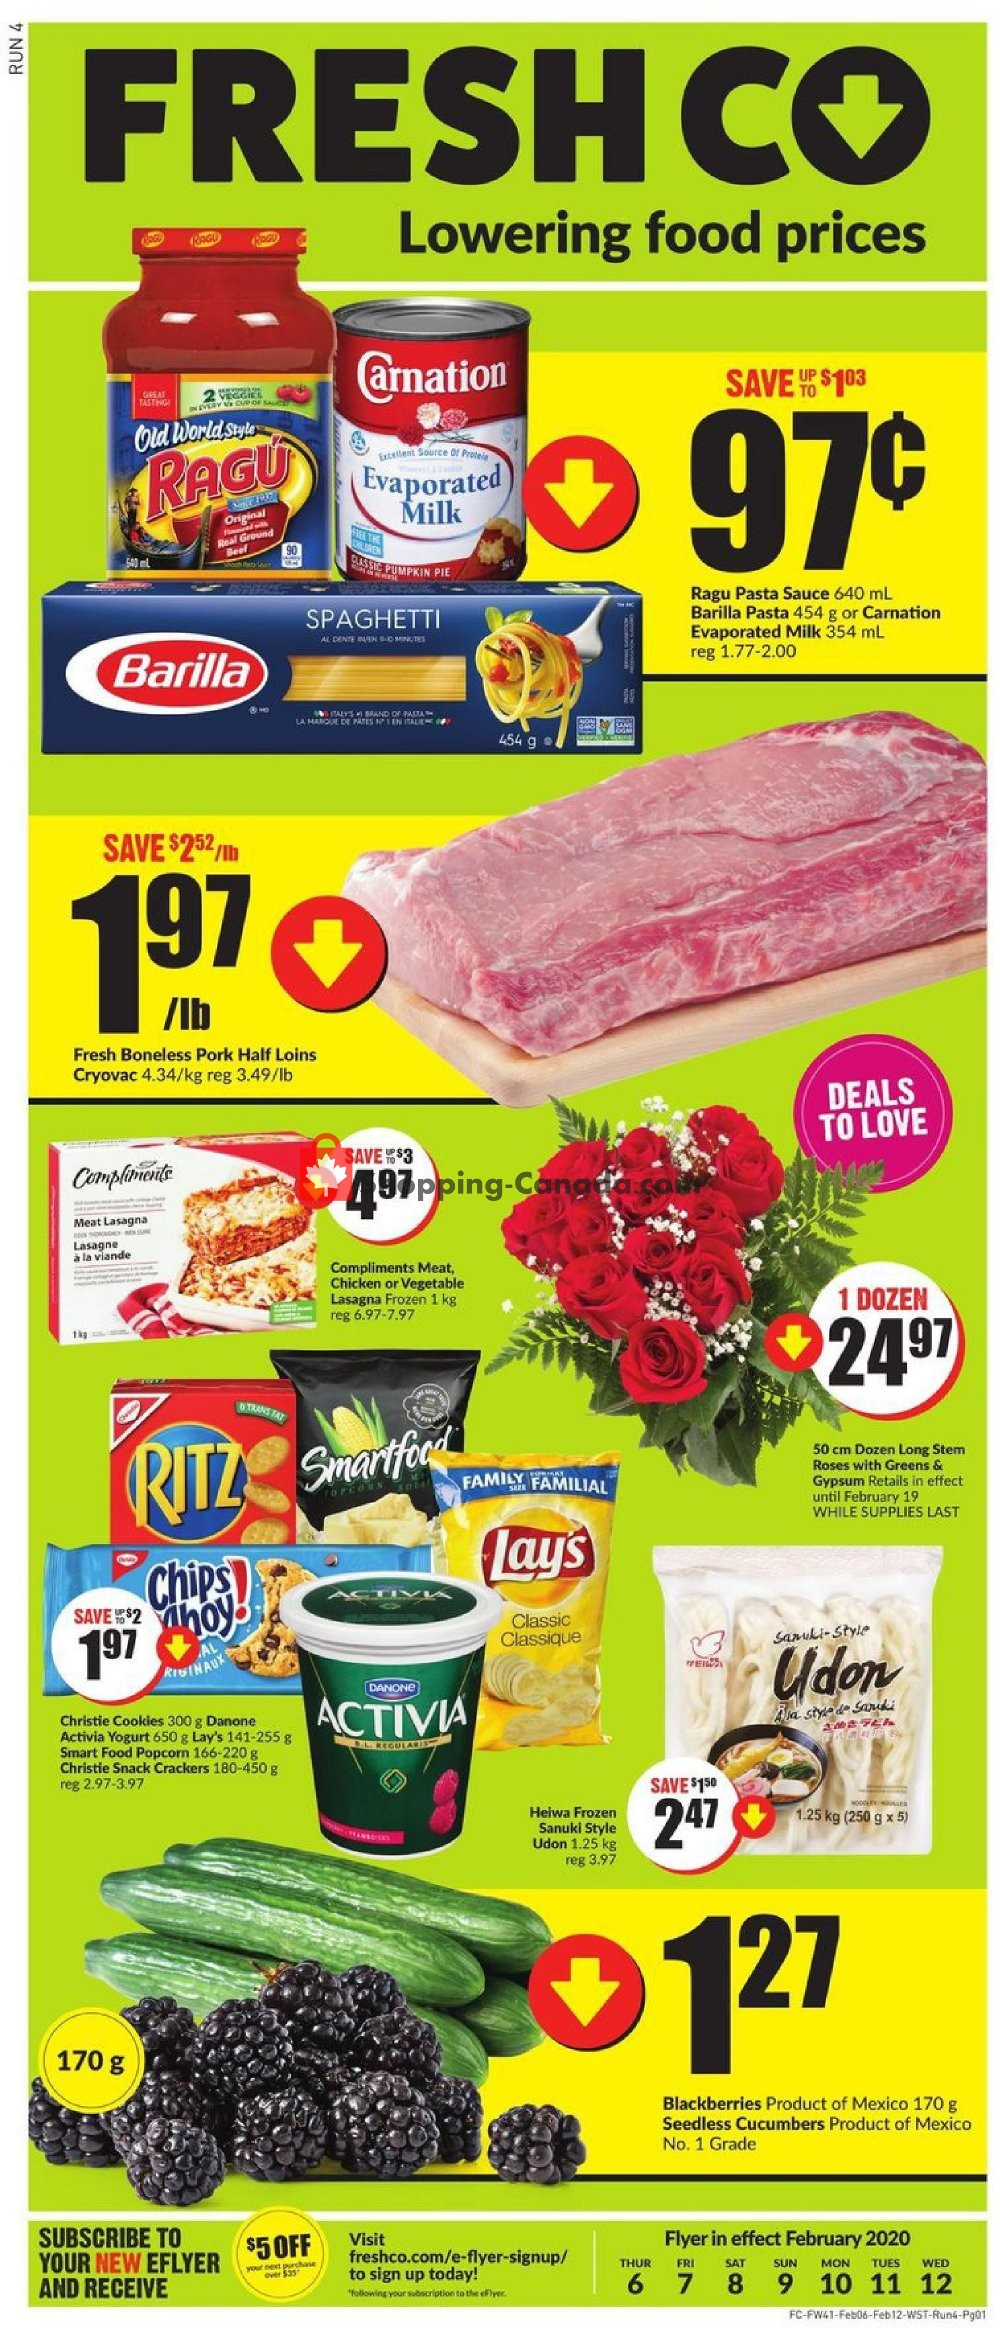 Flyer FreshCo Canada - from Thursday February 6, 2020 to Wednesday February 12, 2020